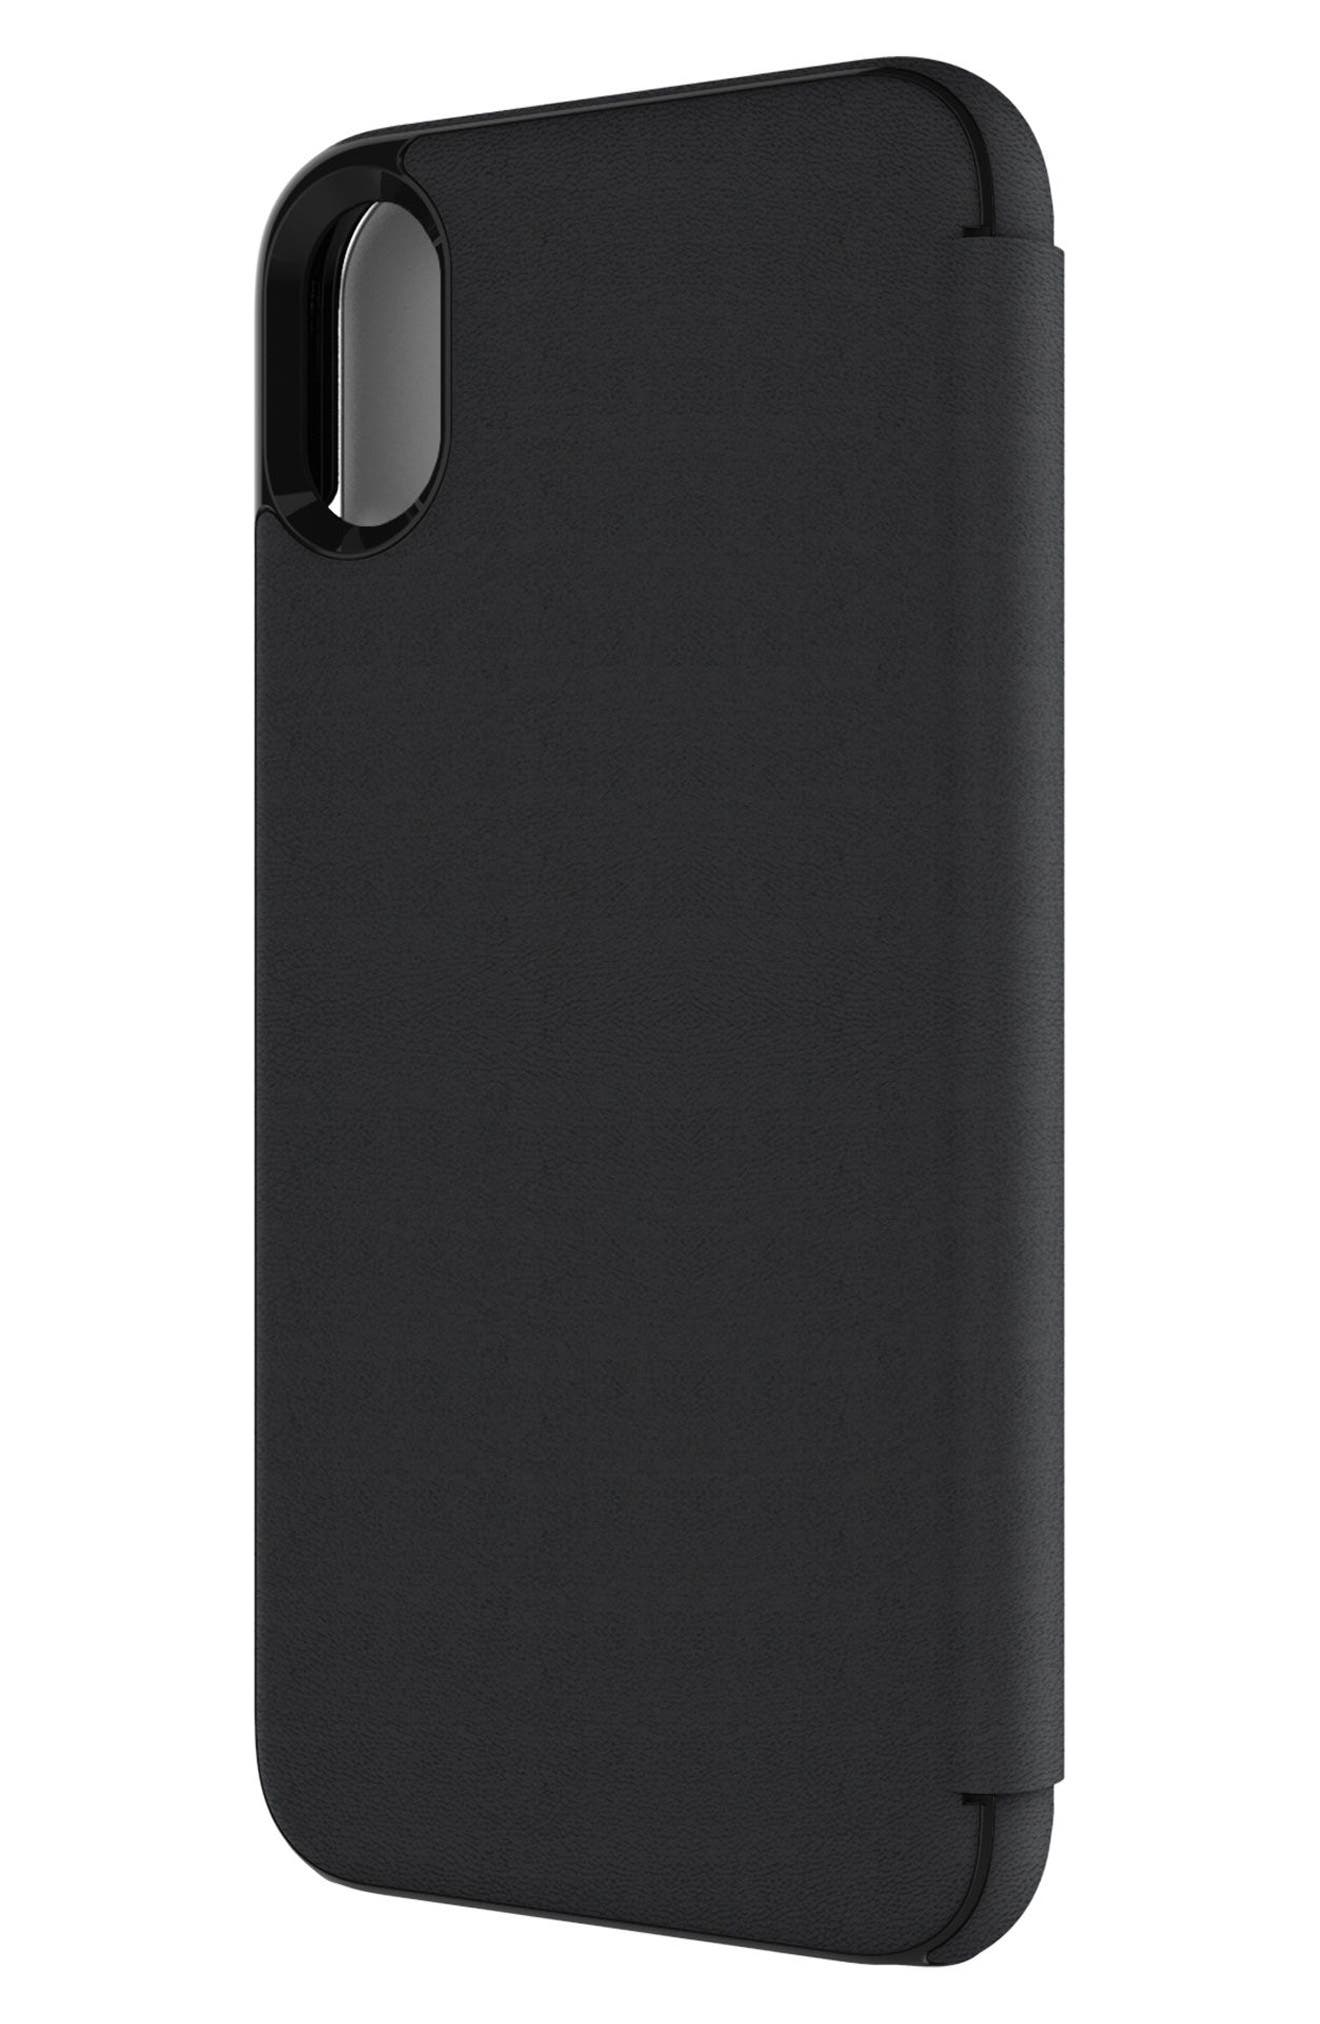 Privacy Folio iPhone X Case,                             Alternate thumbnail 4, color,                             Black Gunmetal